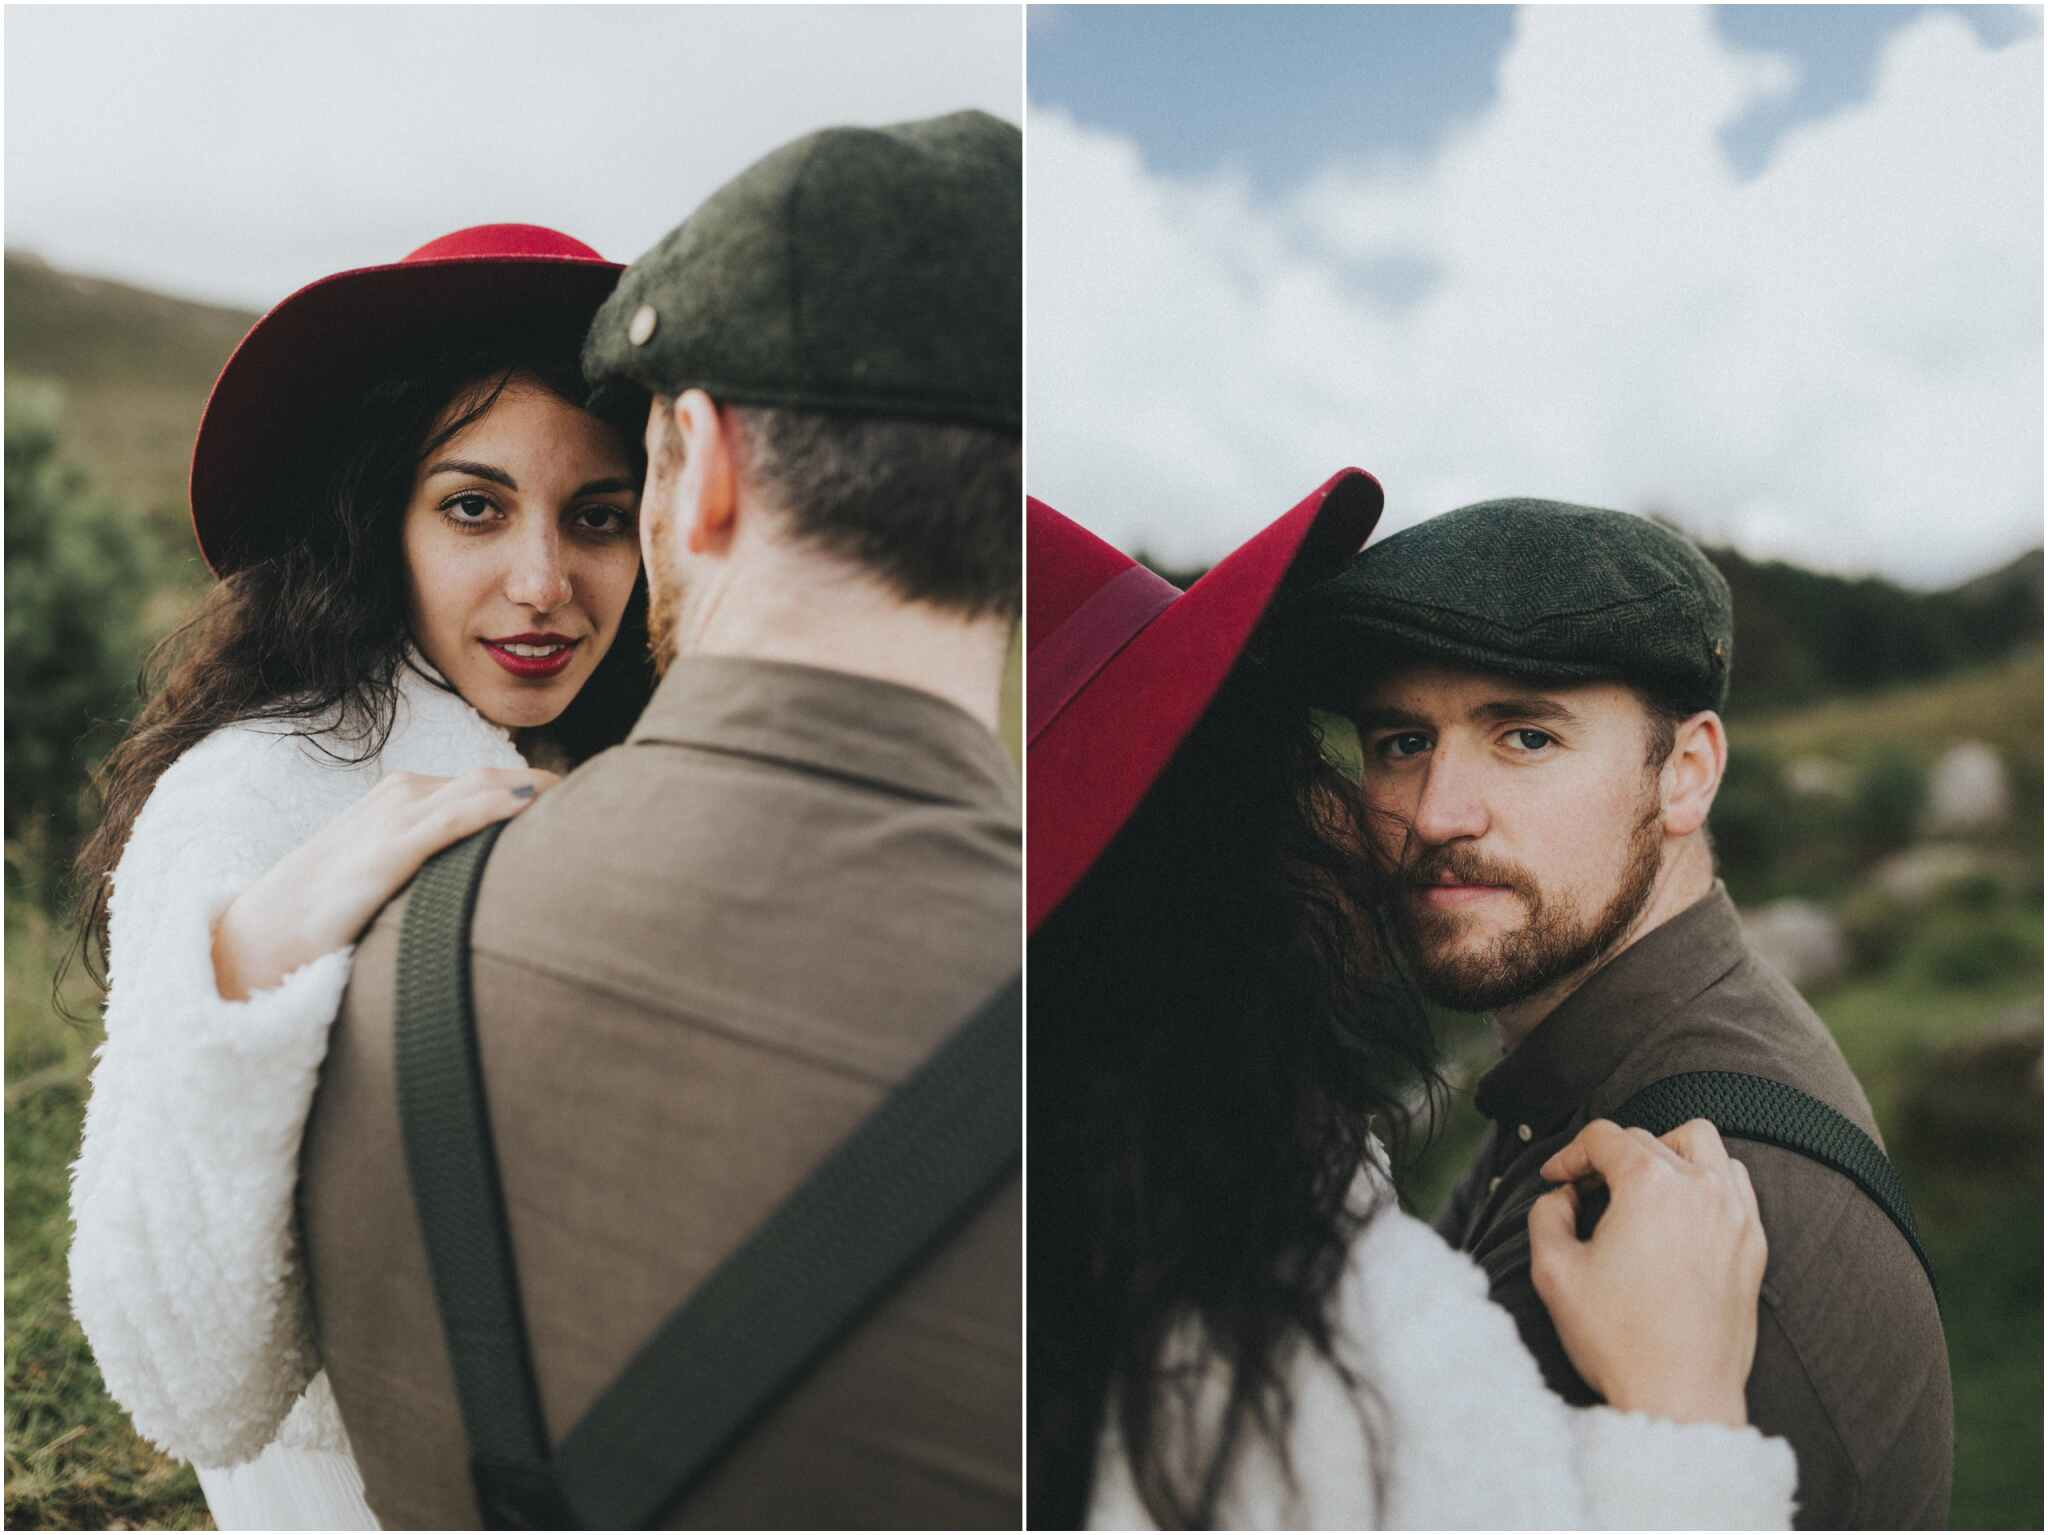 Rachel + David - Hiking Elopement in Muckish Mountain and Poisoned Glen, Donegal 27